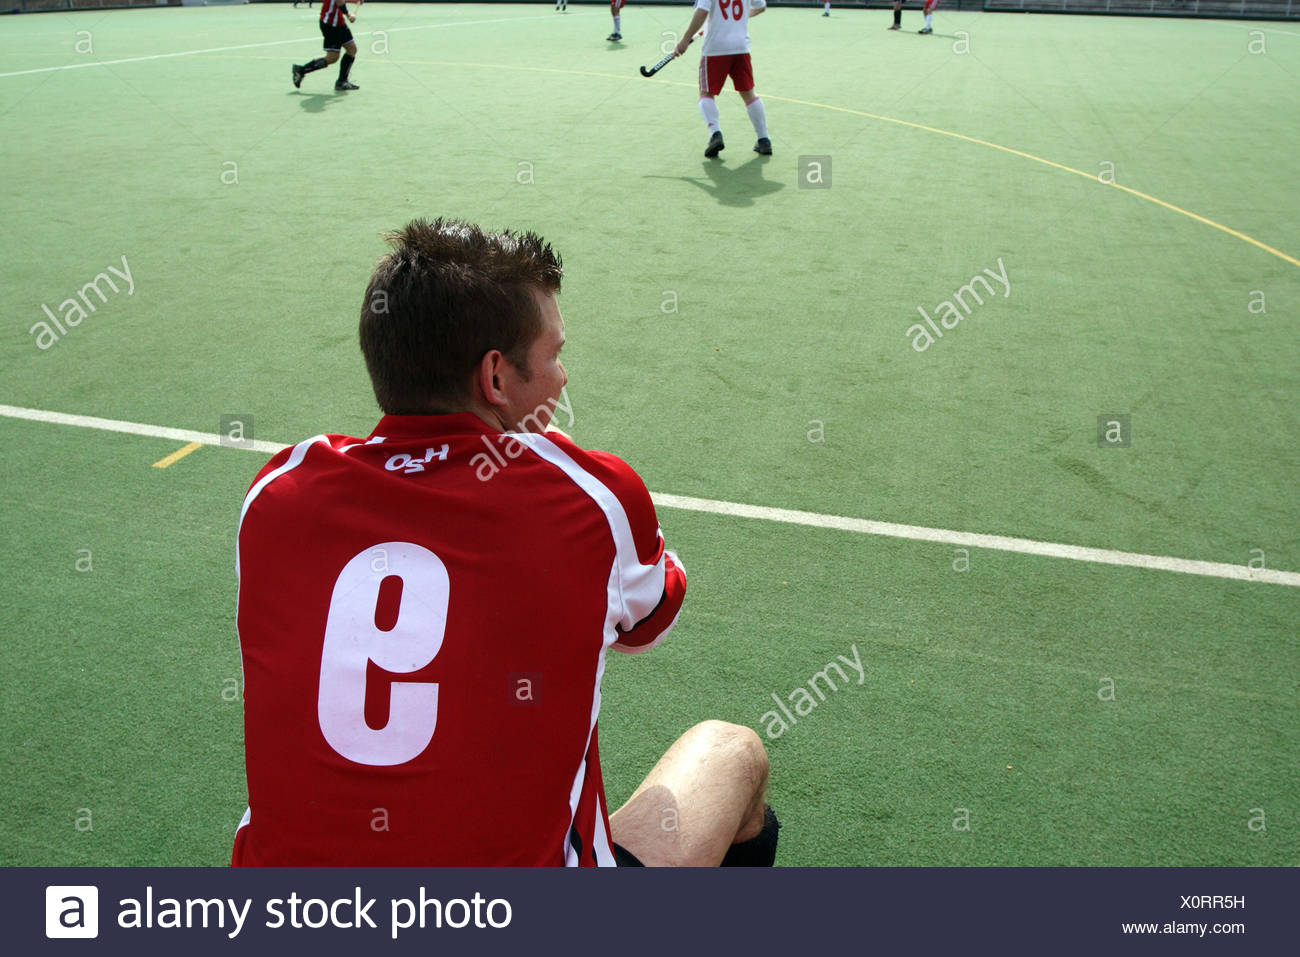 Ruesselsheim Hockey Player On The Bench Stock Photo